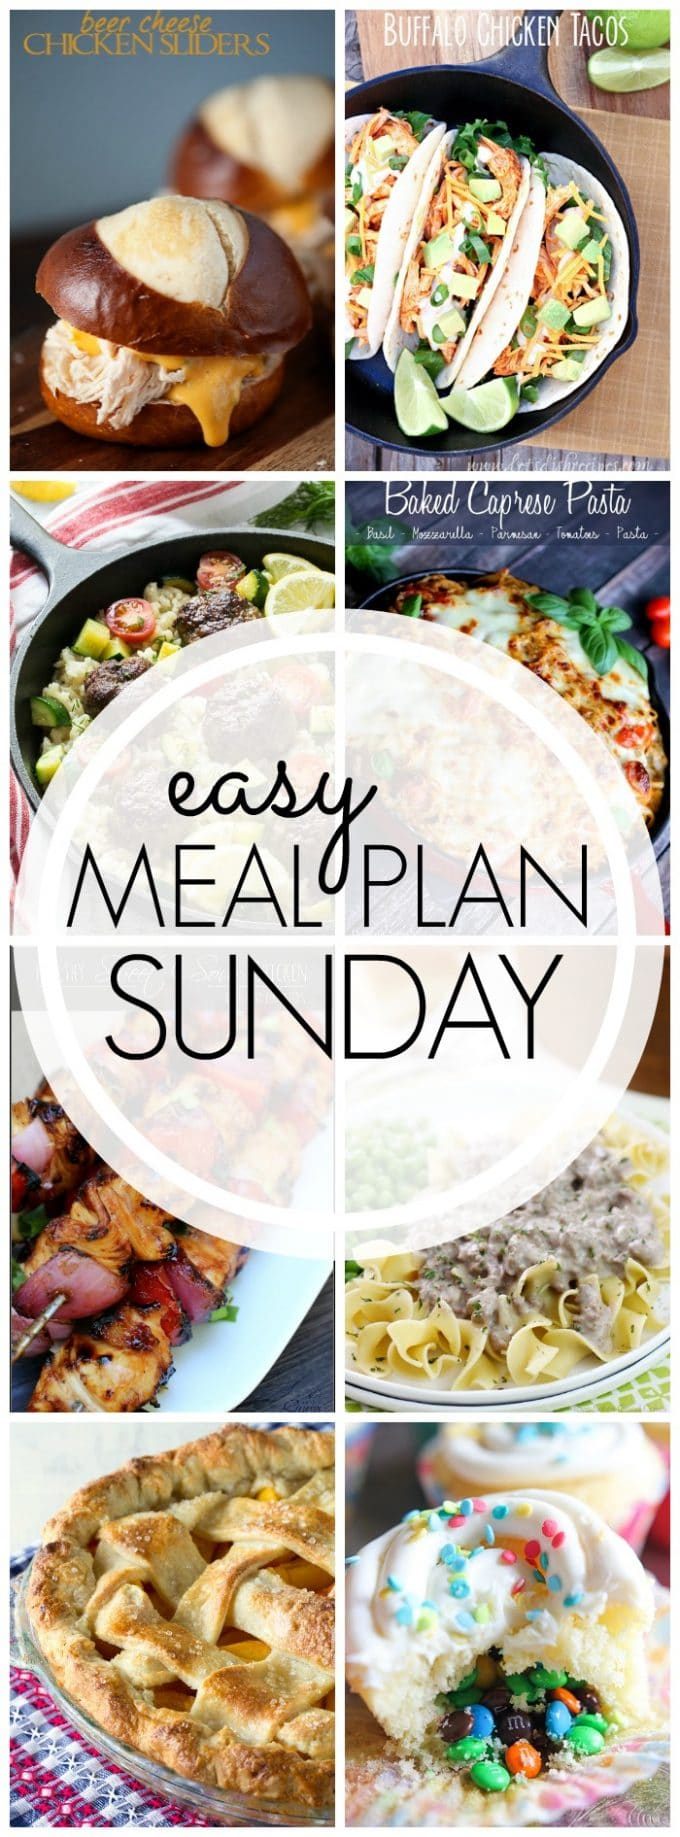 Easy Meal Plan Sunday - Week 53